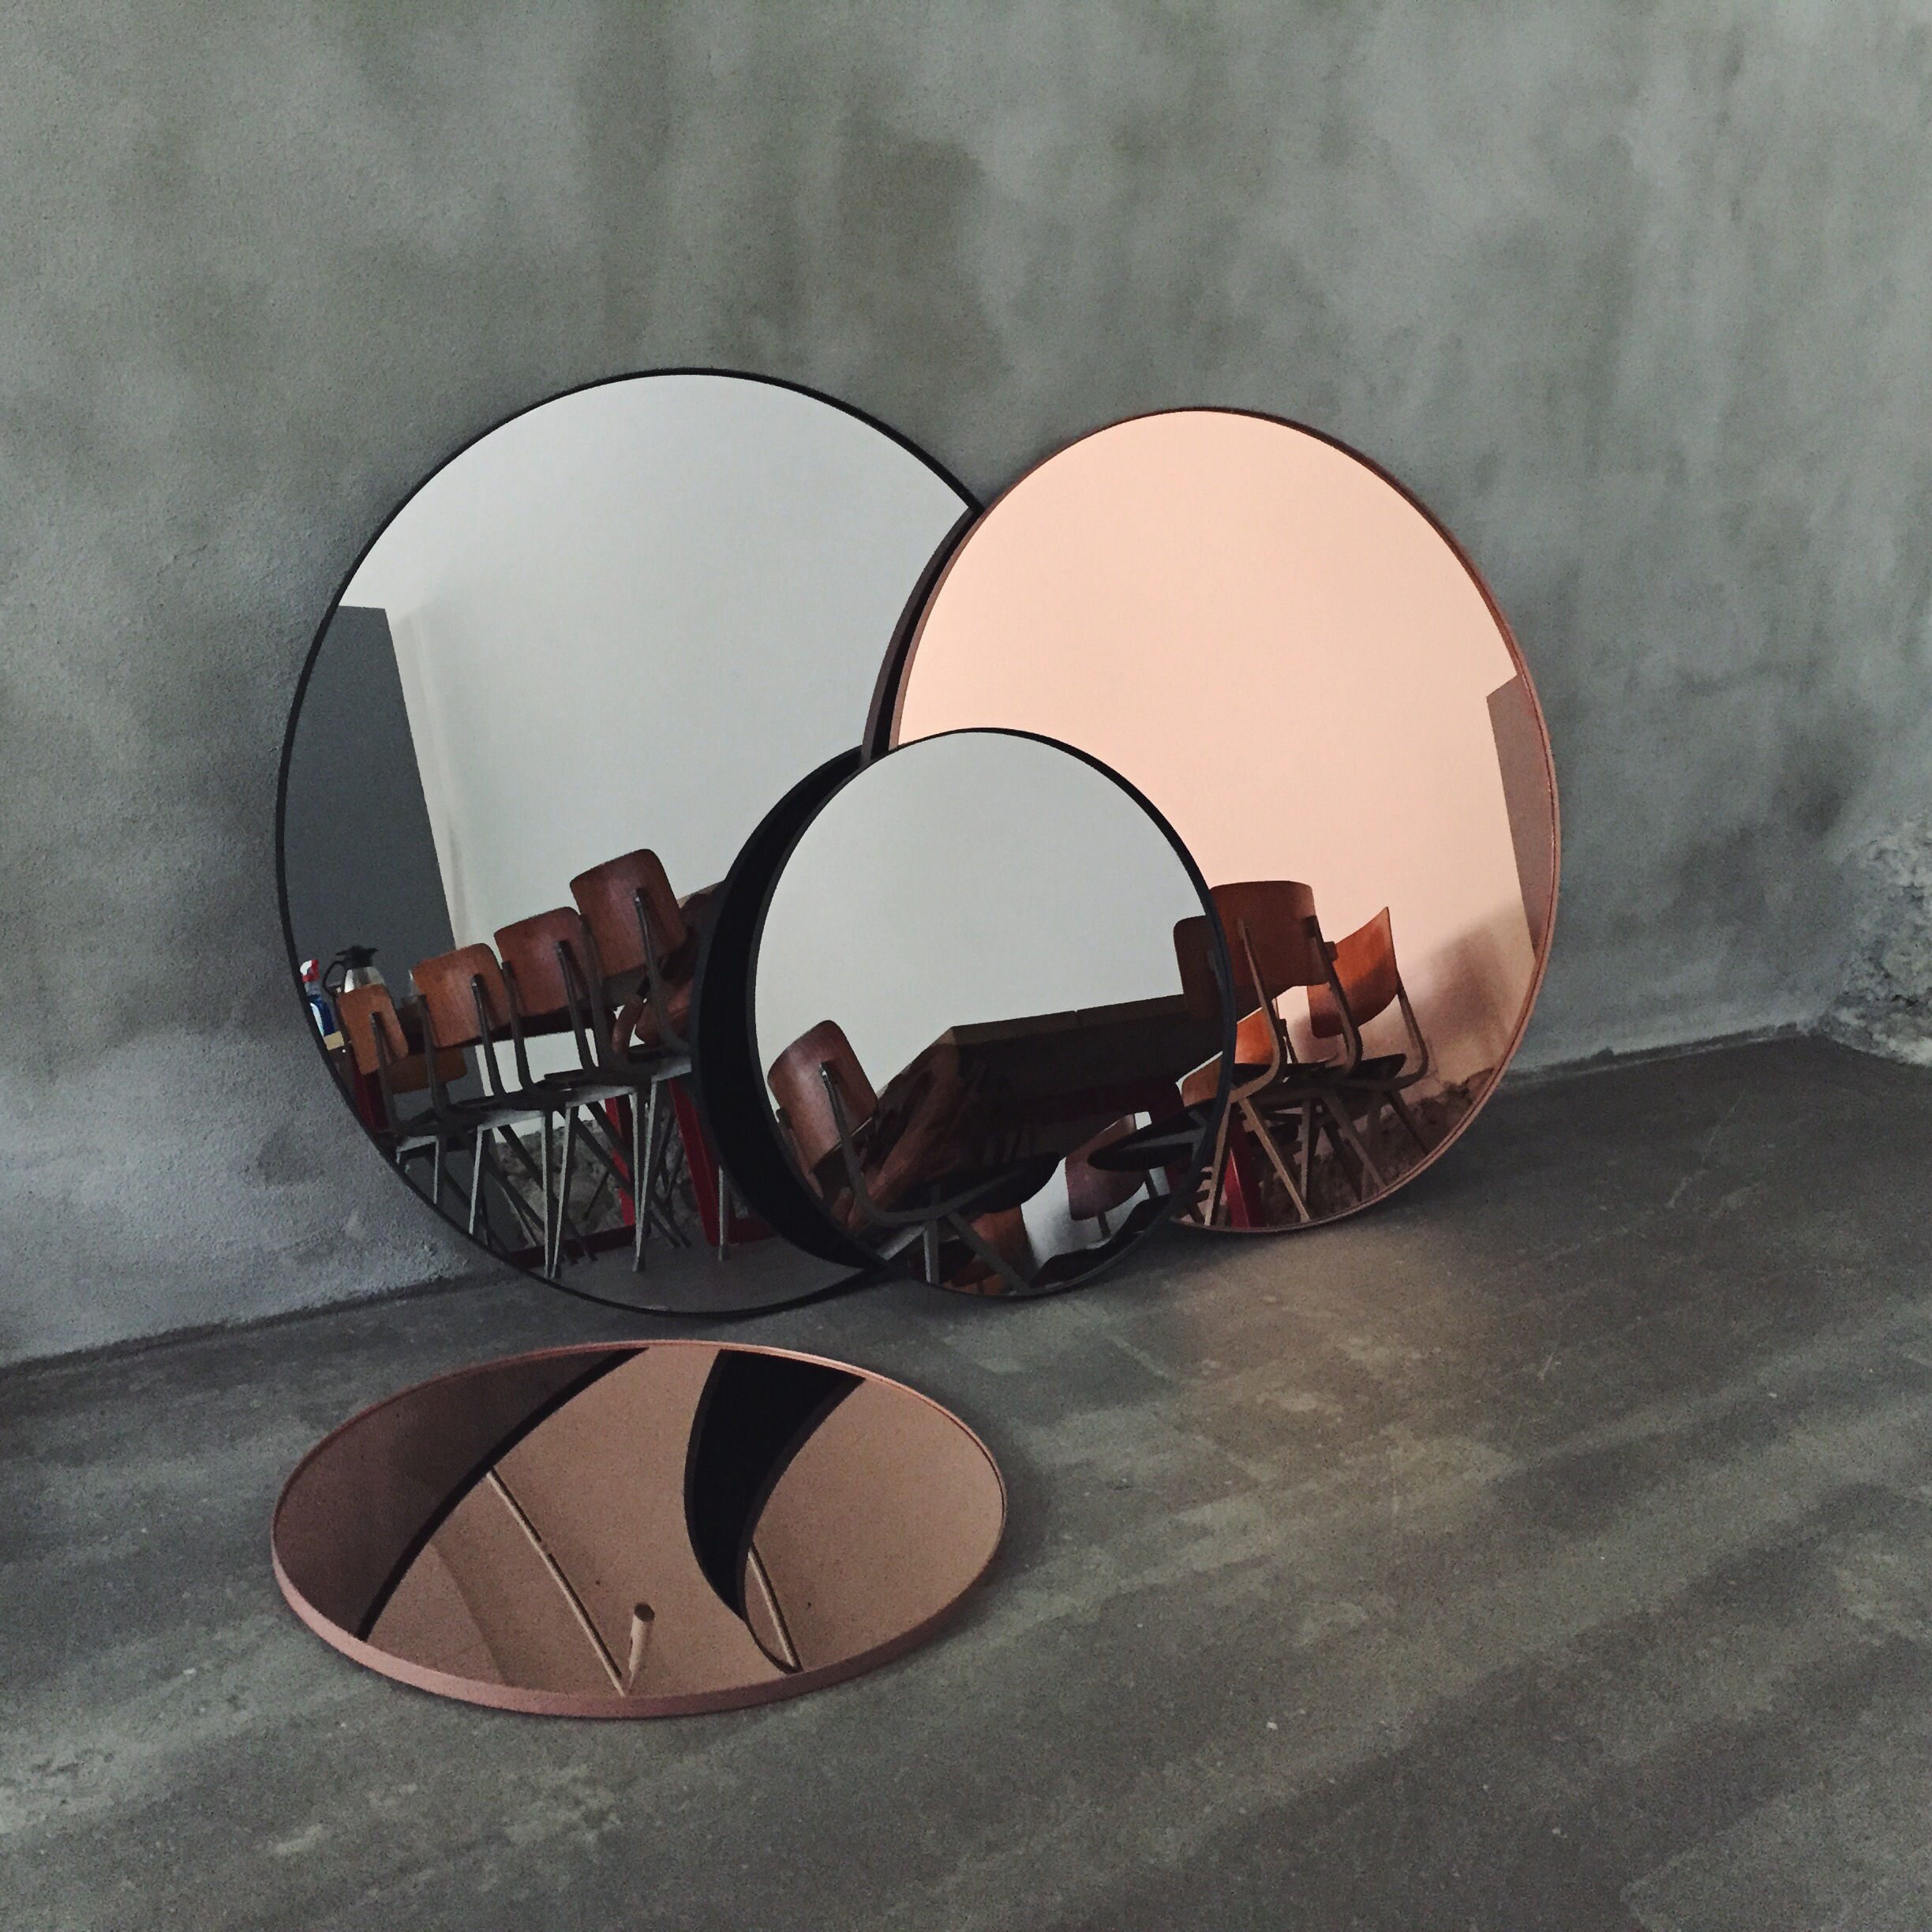 Quadro wall mirror 90 x 90 cm smoked grey by aytm for Miroir 90x90